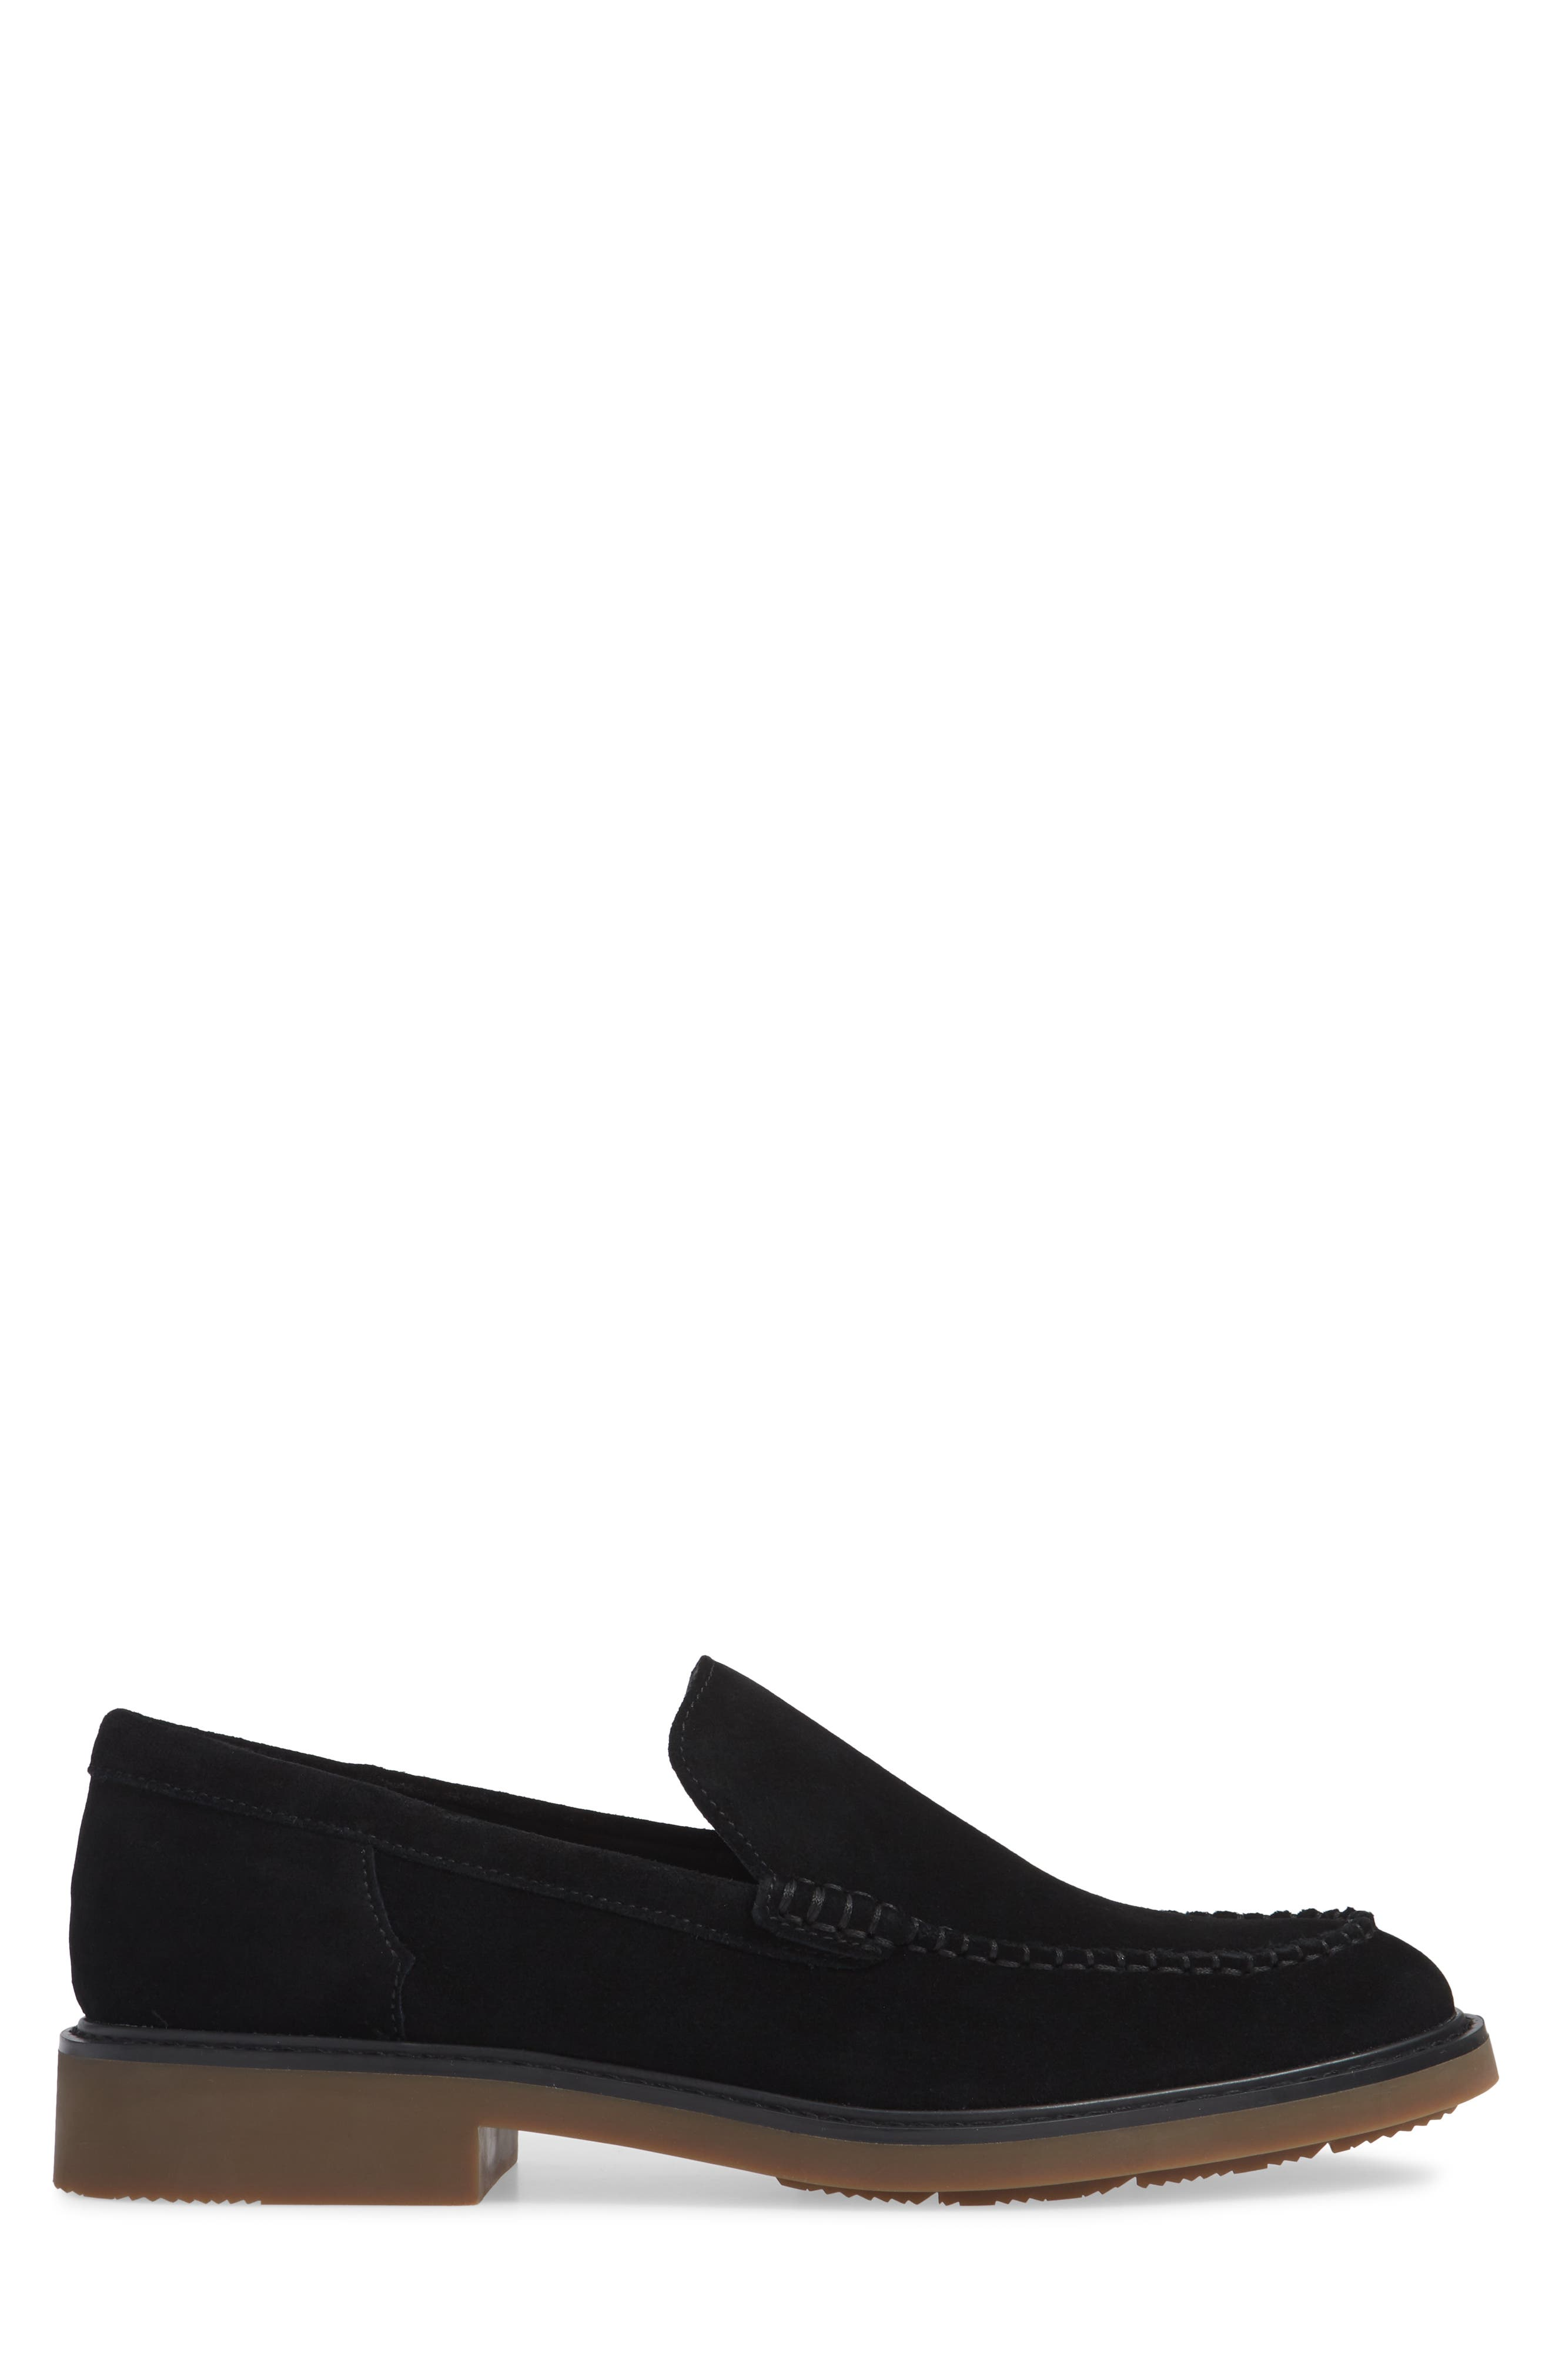 Vance Apron Toe Loafer,                             Alternate thumbnail 3, color,                             BLACK CALF SUEDE